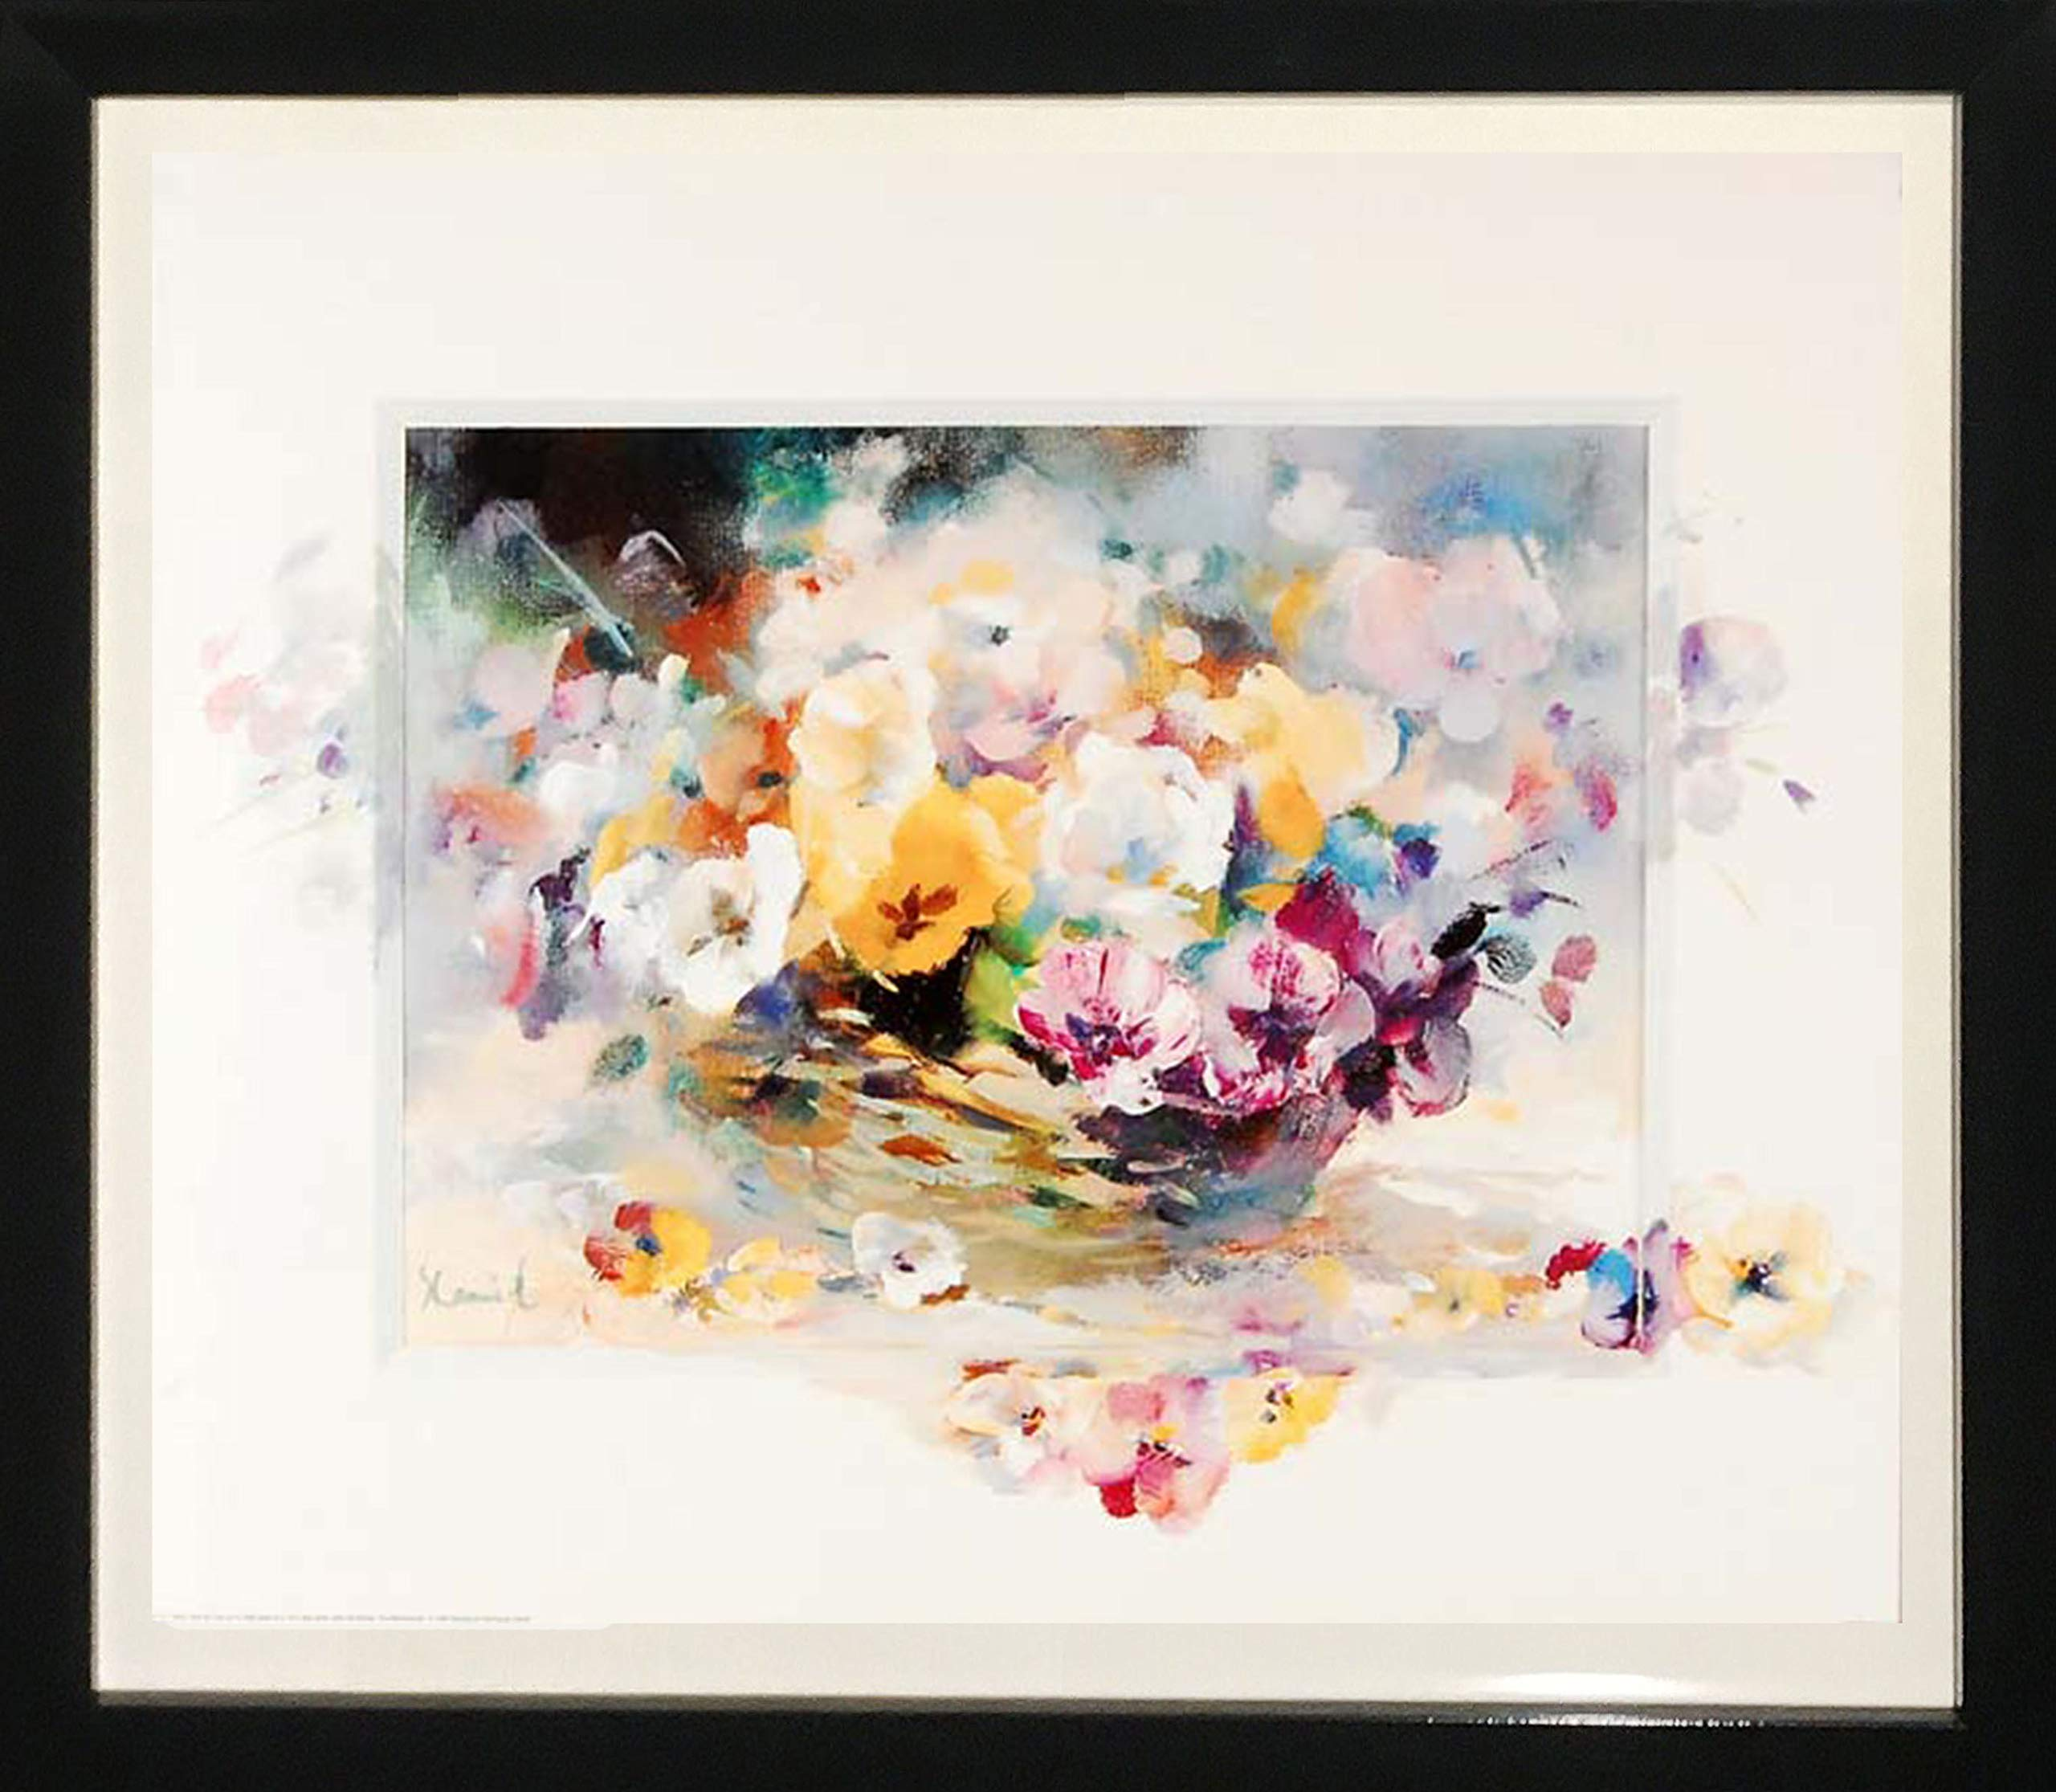 Framed Art''Flowers'' by Stephanie Camel by